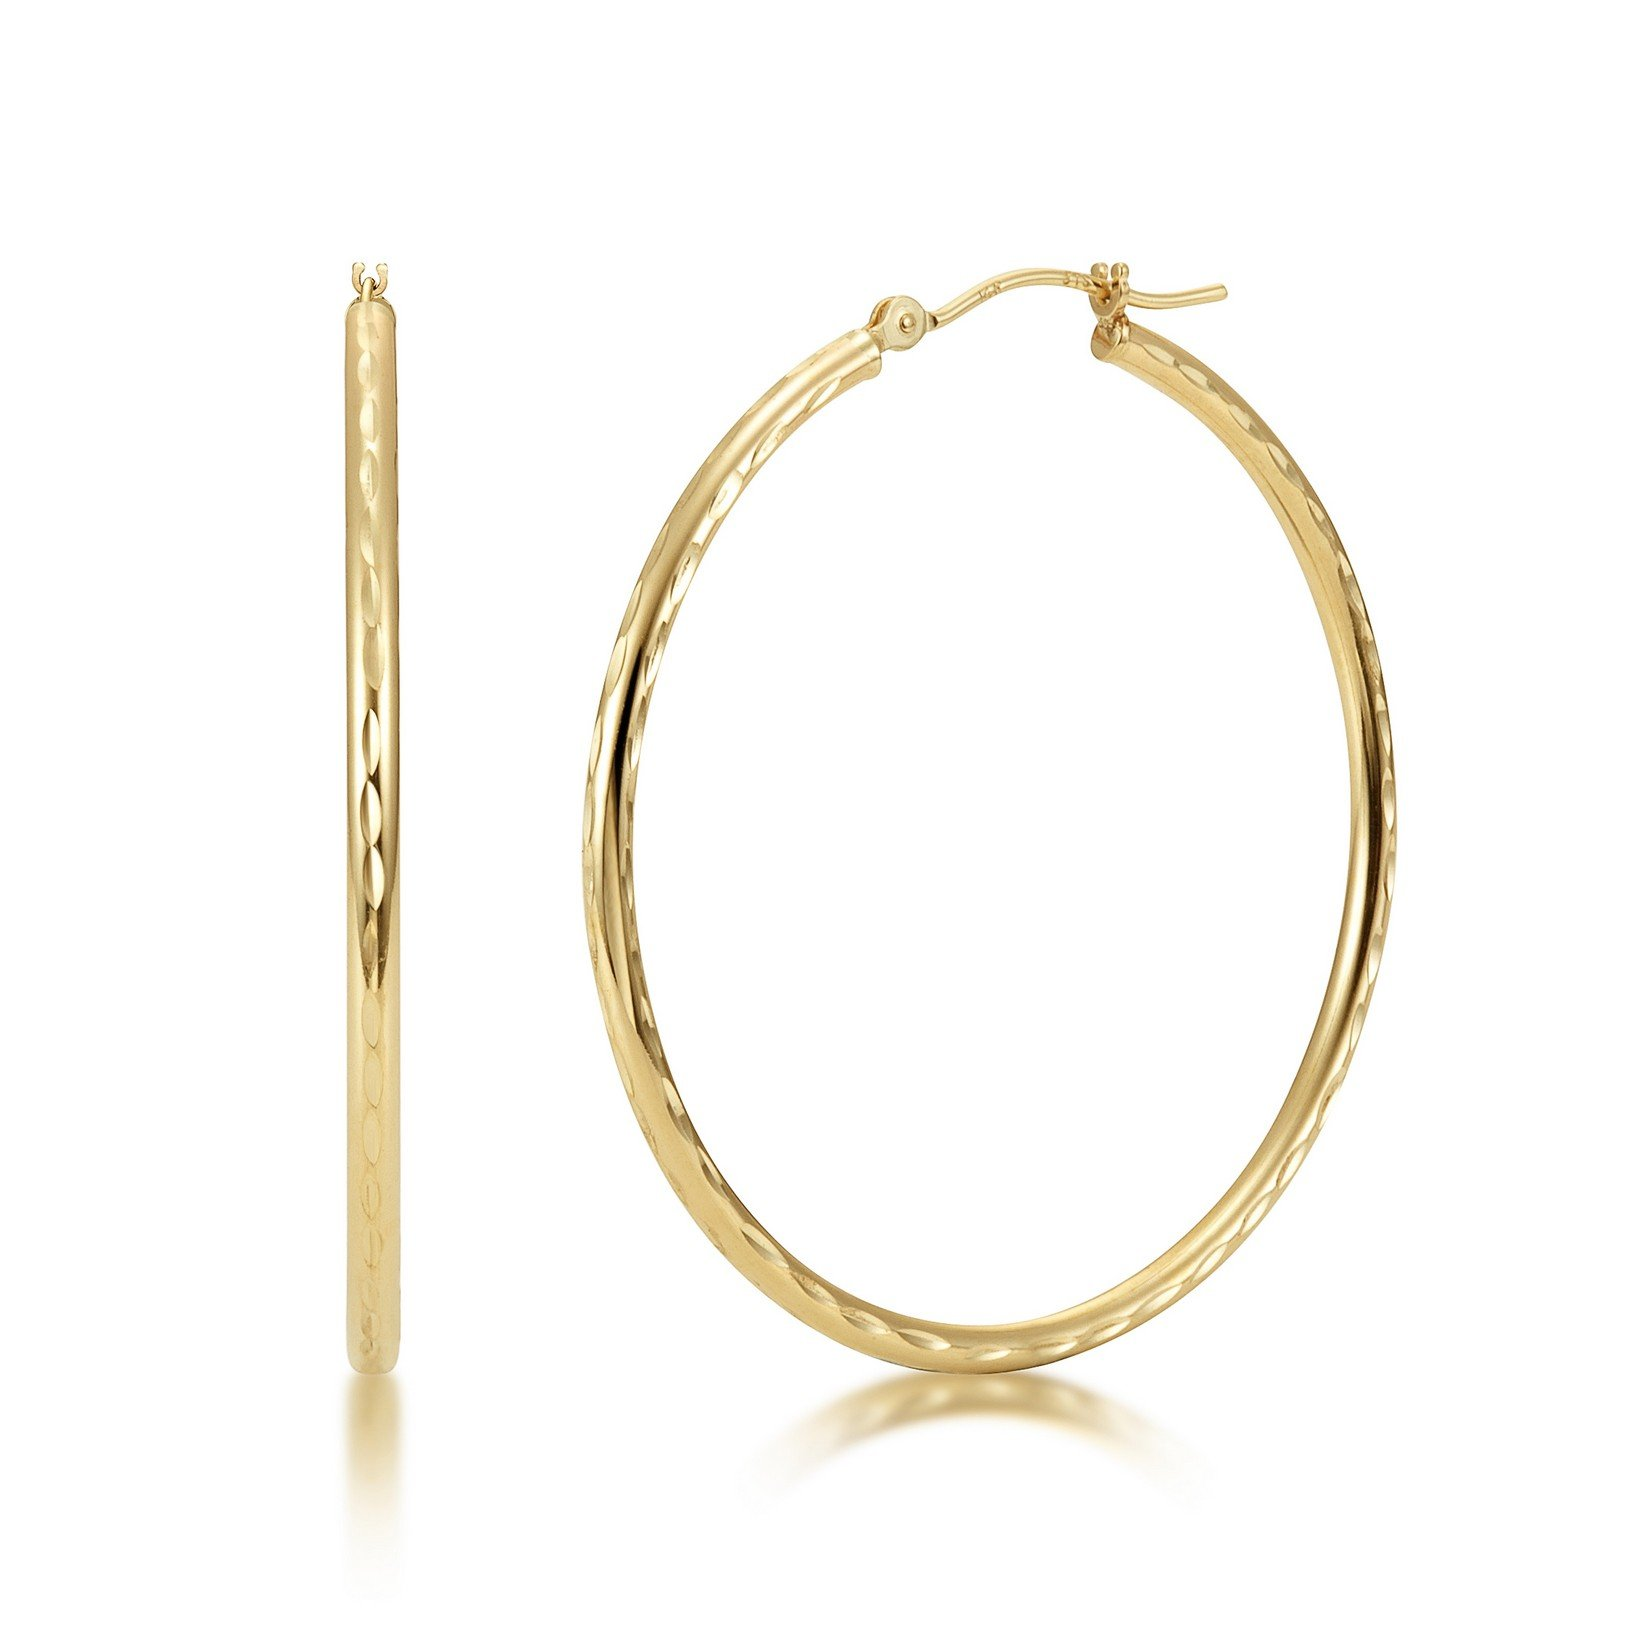 Full Diamond Cut 14k Yellow Gold 2mm x 40mm Click Top Tube Hoop Earrings - By Kezef Creations